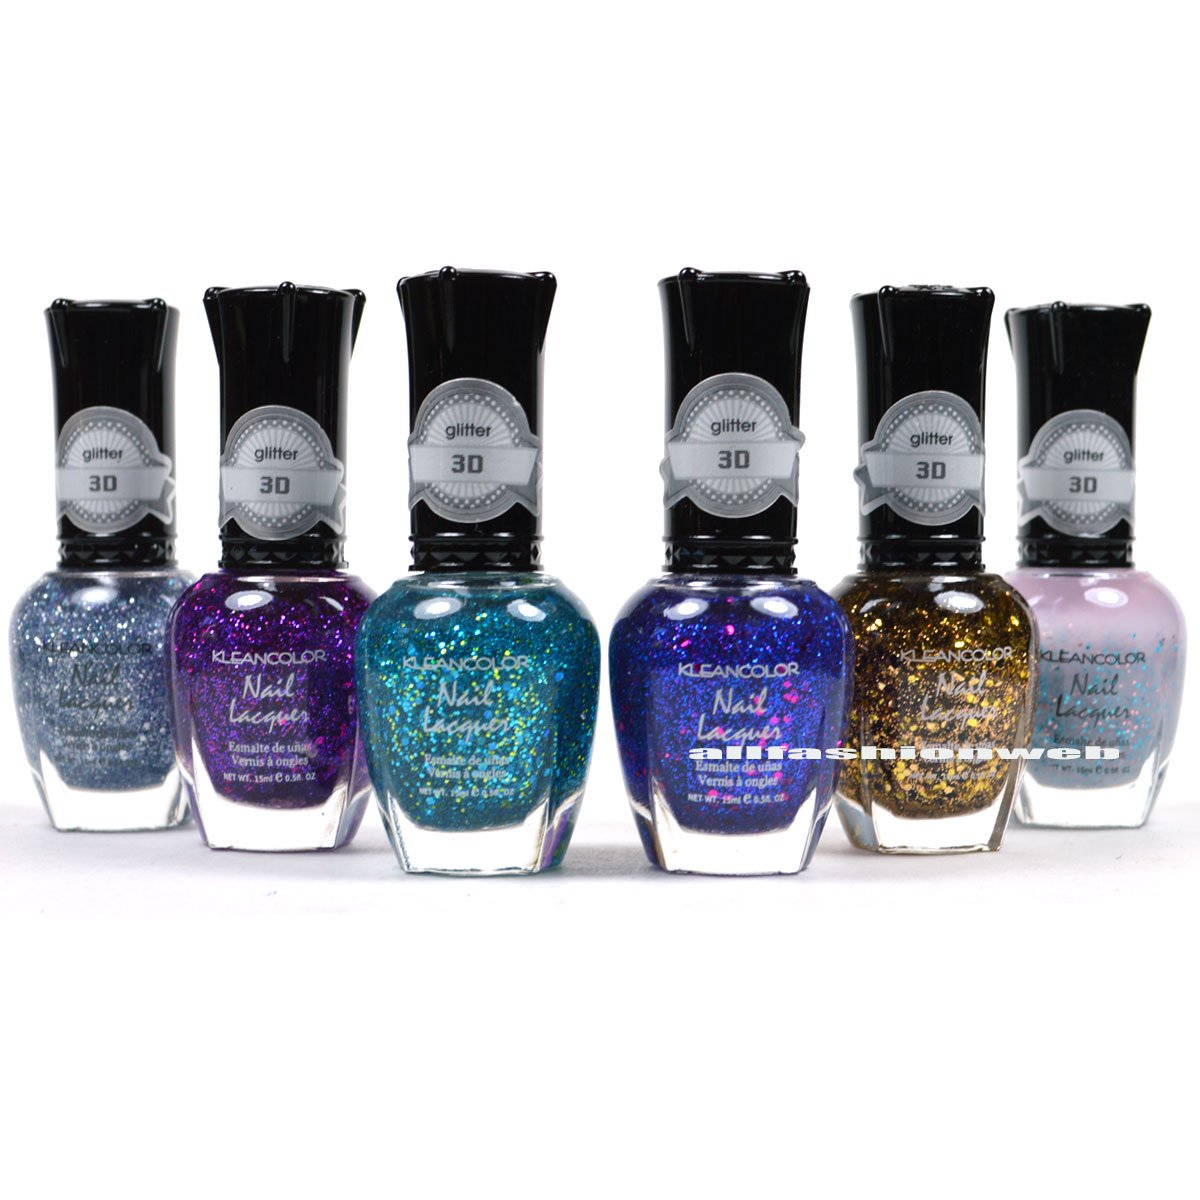 KLEANCOLOR NAIL POLISH 3D ADDICTION GLITTER TOP COAT LOT OF 6 COLORS KNP16 + FREE EARRING